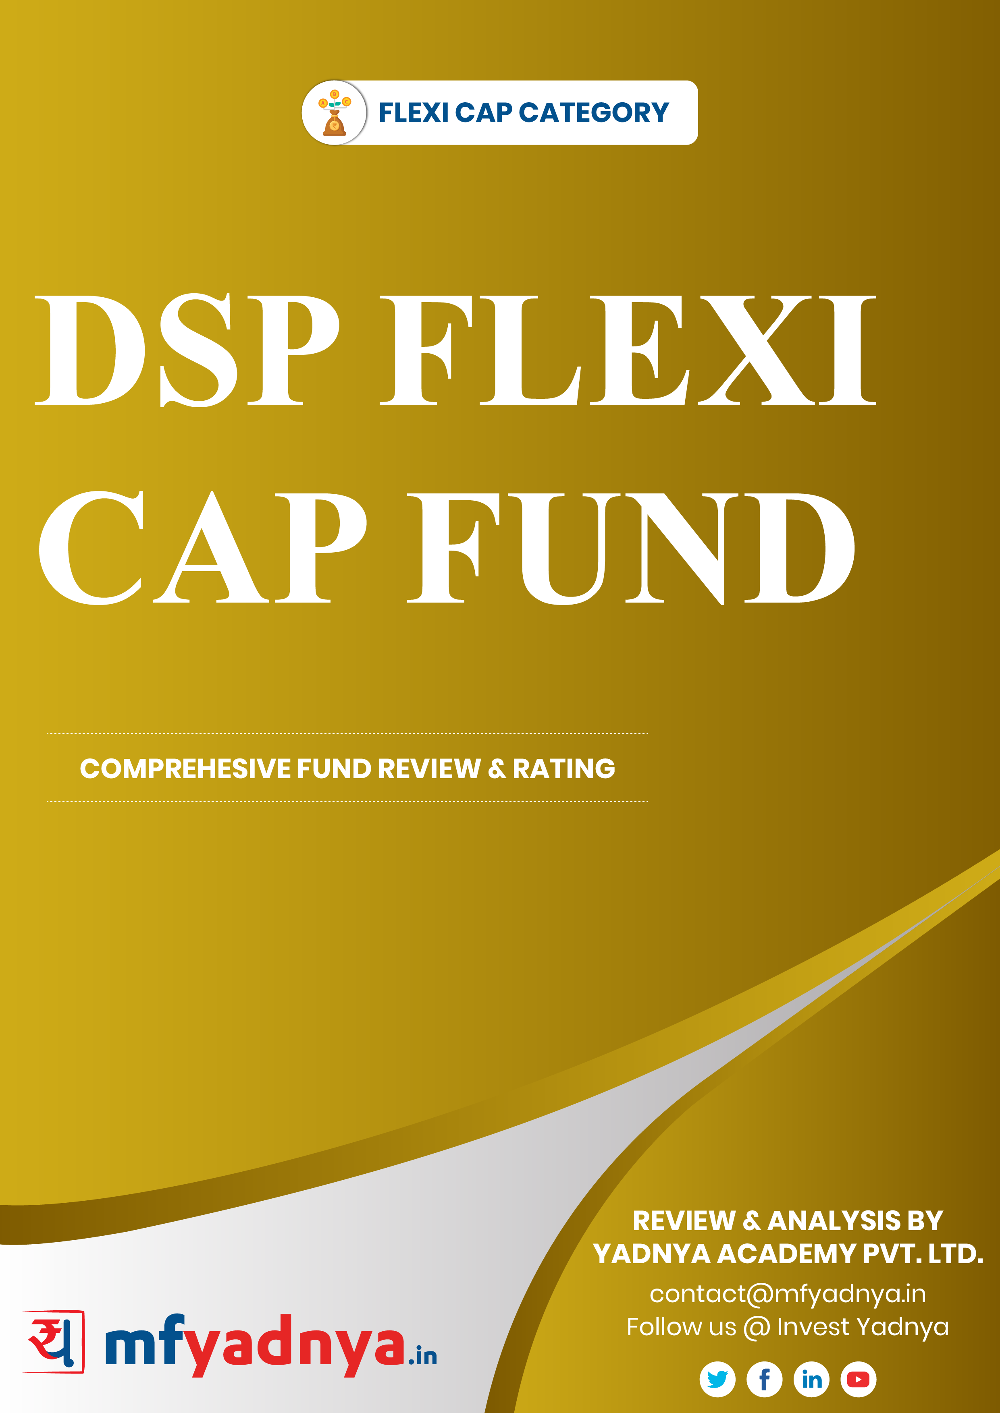 Flexi Cap Category Review - DSP Equity Fund. Most Comprehensive and detailed MF review based on Yadnya's proprietary methodology of Green, Yellow & Red Star. Detailed Analysis & Review based on July 31st, 2019 data.